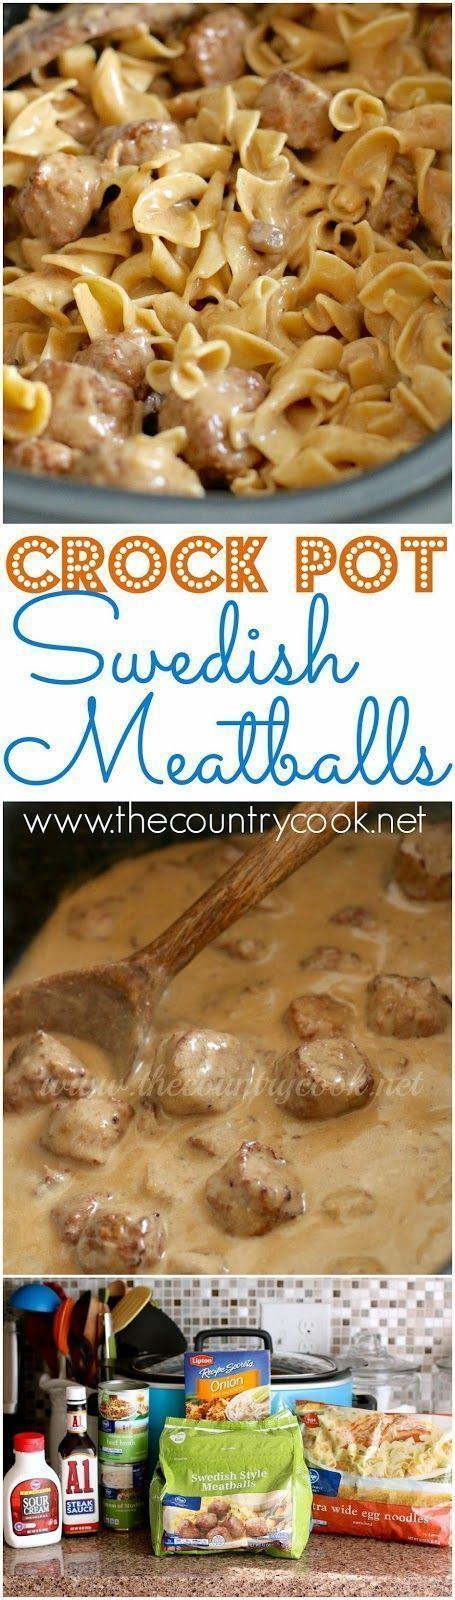 Crock Pot Swedish Meatball Recipe from The Country Cook. Similar to beef stroganoff but with meatballs! Simple to make. Frozen meatballs, egg noodles and a creamy sauce all mixed together! A HUGE family favorite!! All made in a slow cooker!